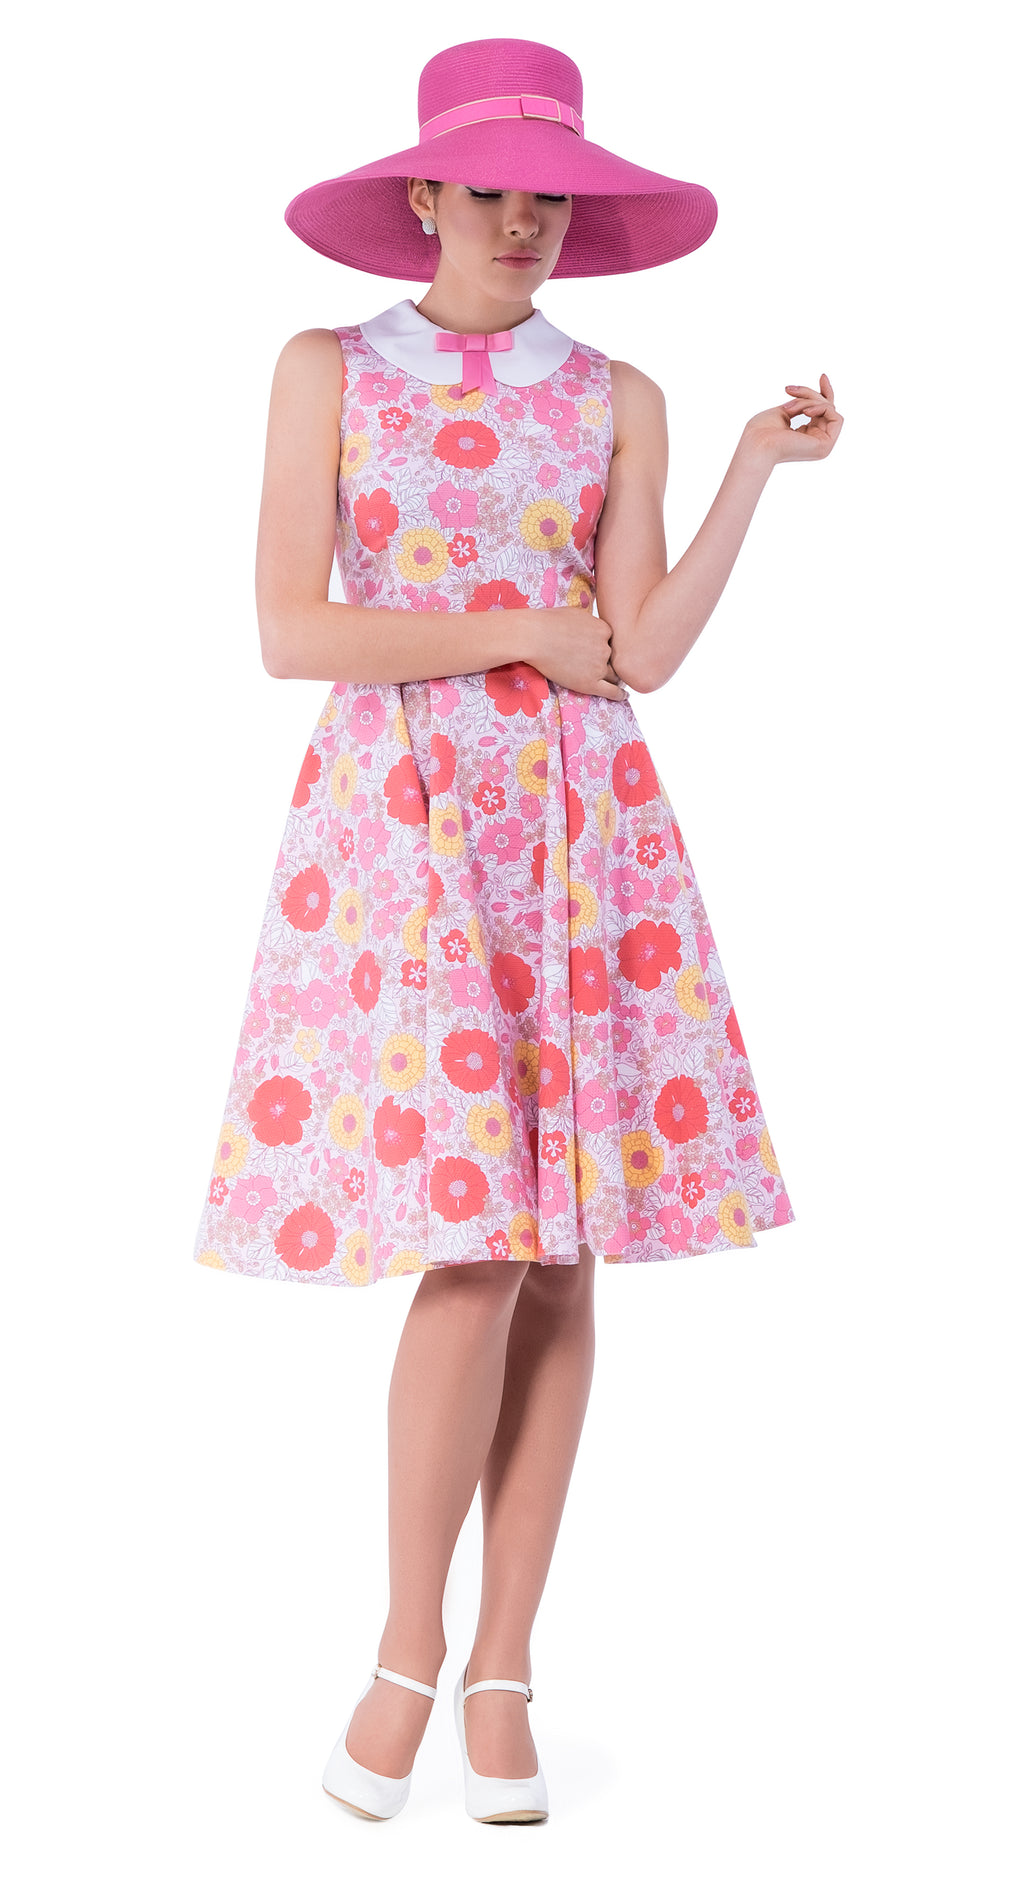 This lively floral vintage style print dress, with its immediately 50s silhouette has a fitted bodice and a full circle skirt. It's a summery style for casual outings as very breathable and comfortable without compromising its striking impression. Also pairs well with vintage hats or scarves, heels or flats for memorable events over the summer when dressing up is the order of the day.  A vintage style peter pan collar with pink ribbon bow adds final attentive detail.